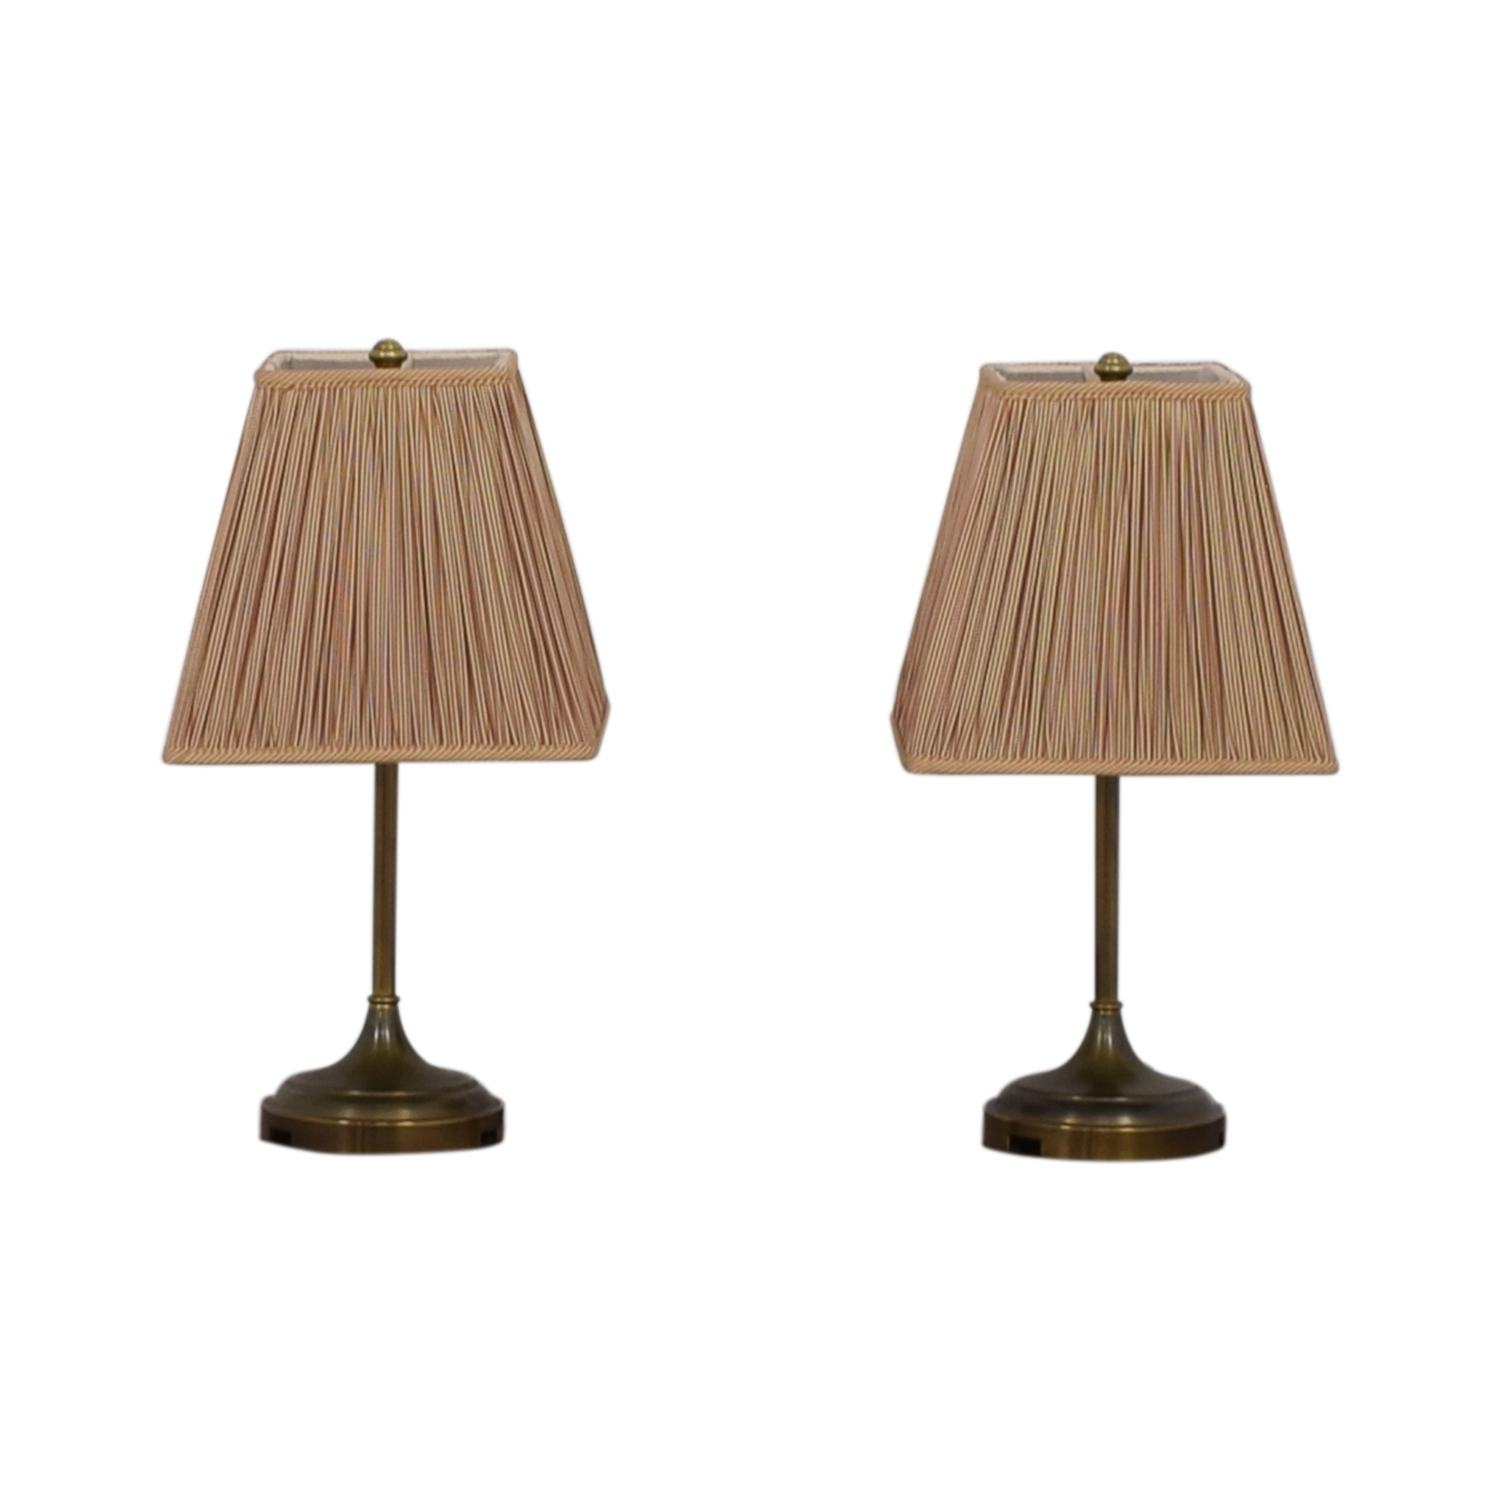 Pottery Barn Pottery Barn Striped Shade Brass Lamps discount